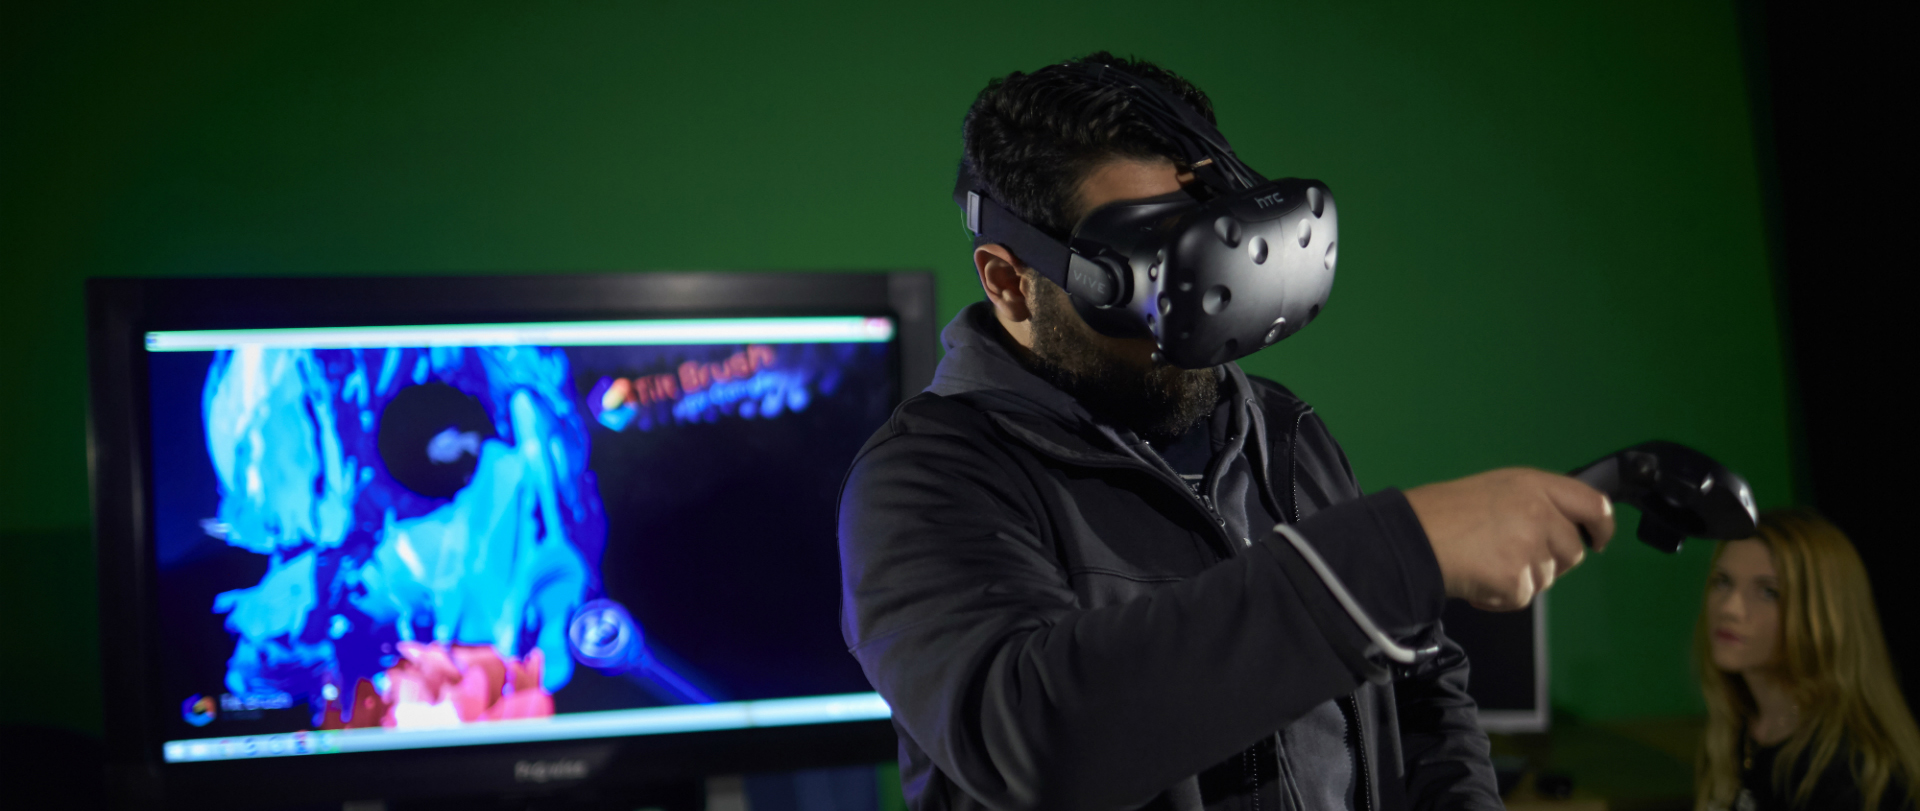 Man in a vr headset playing games